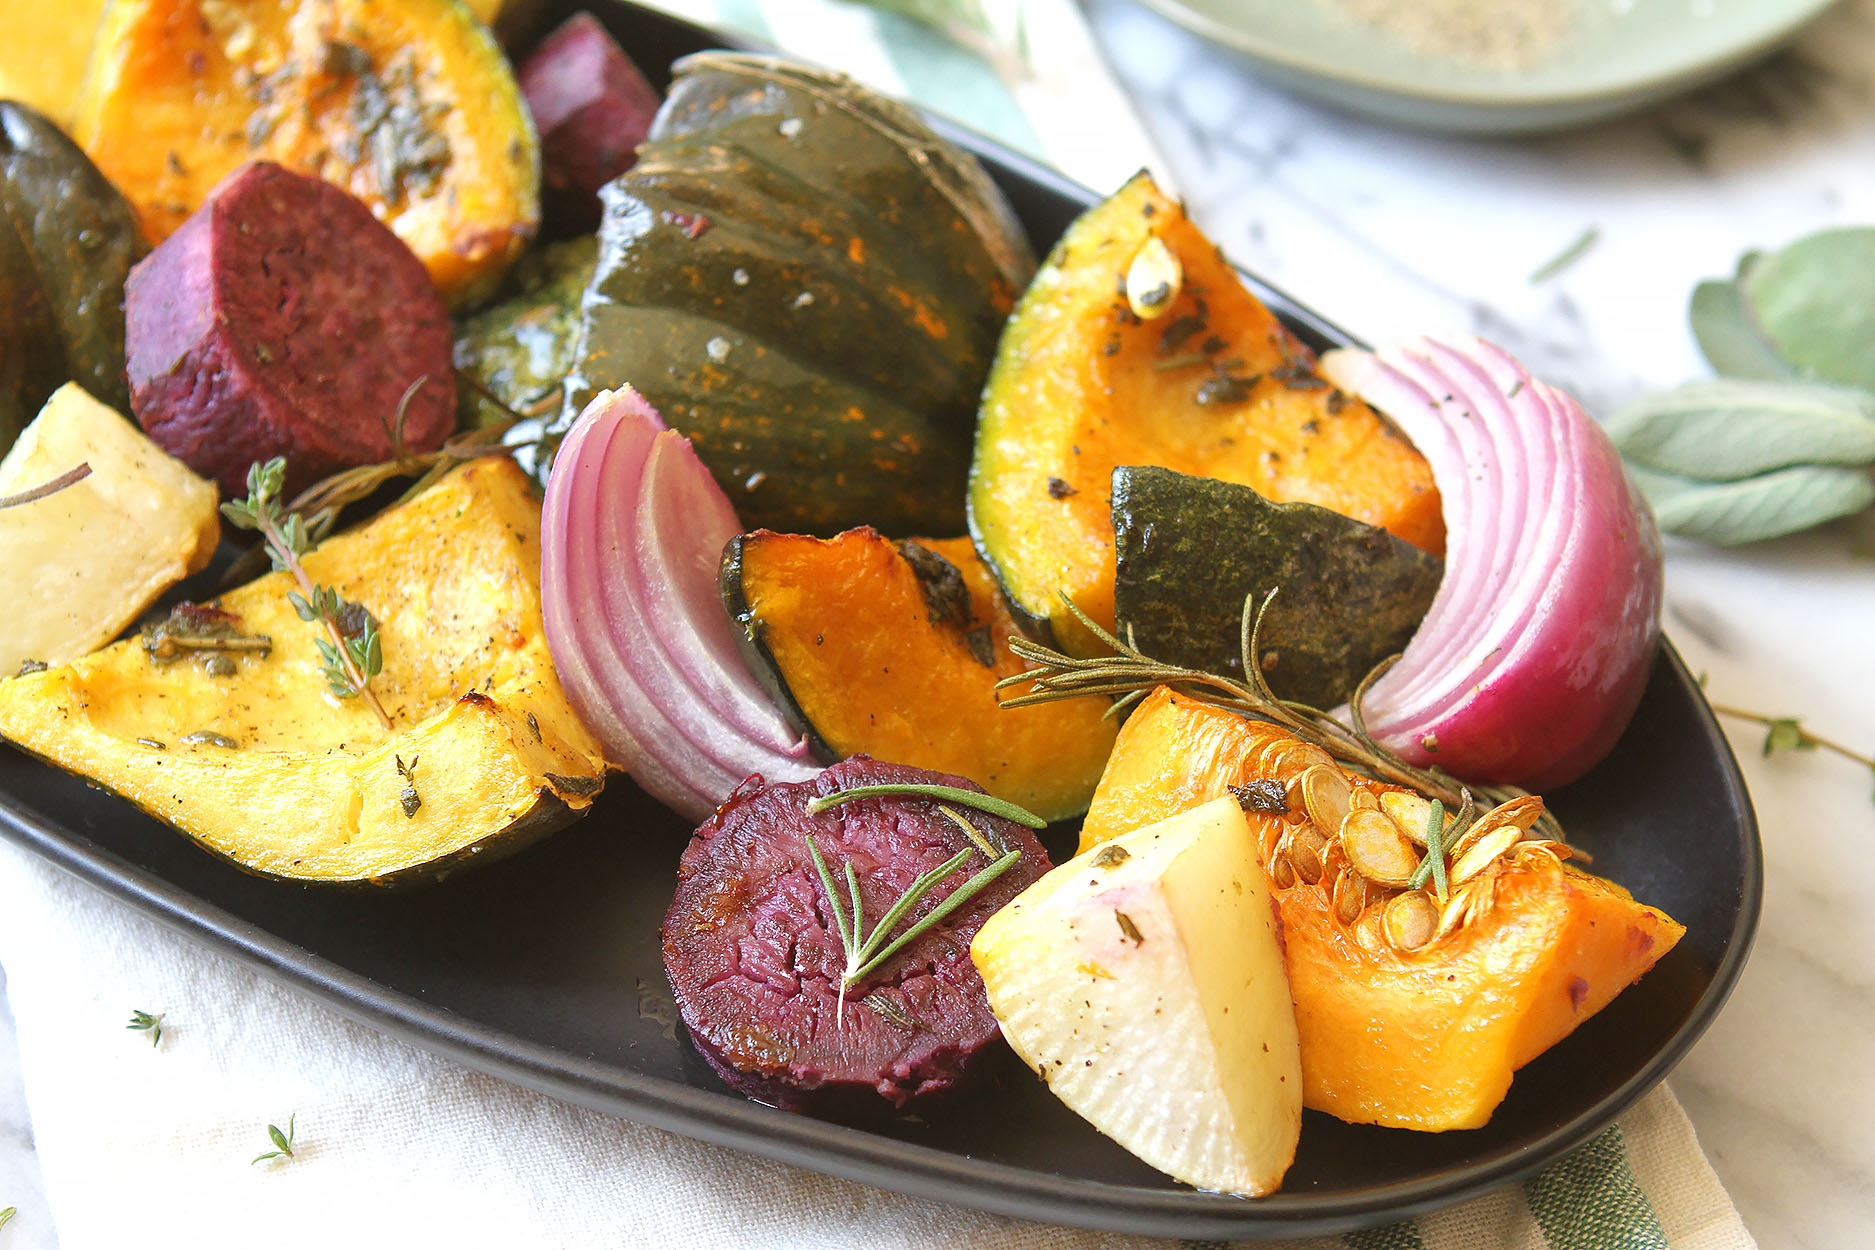 an oblong black plate full of squash, beets, red onions, turnips, and sprinkled with rosemary and thyme